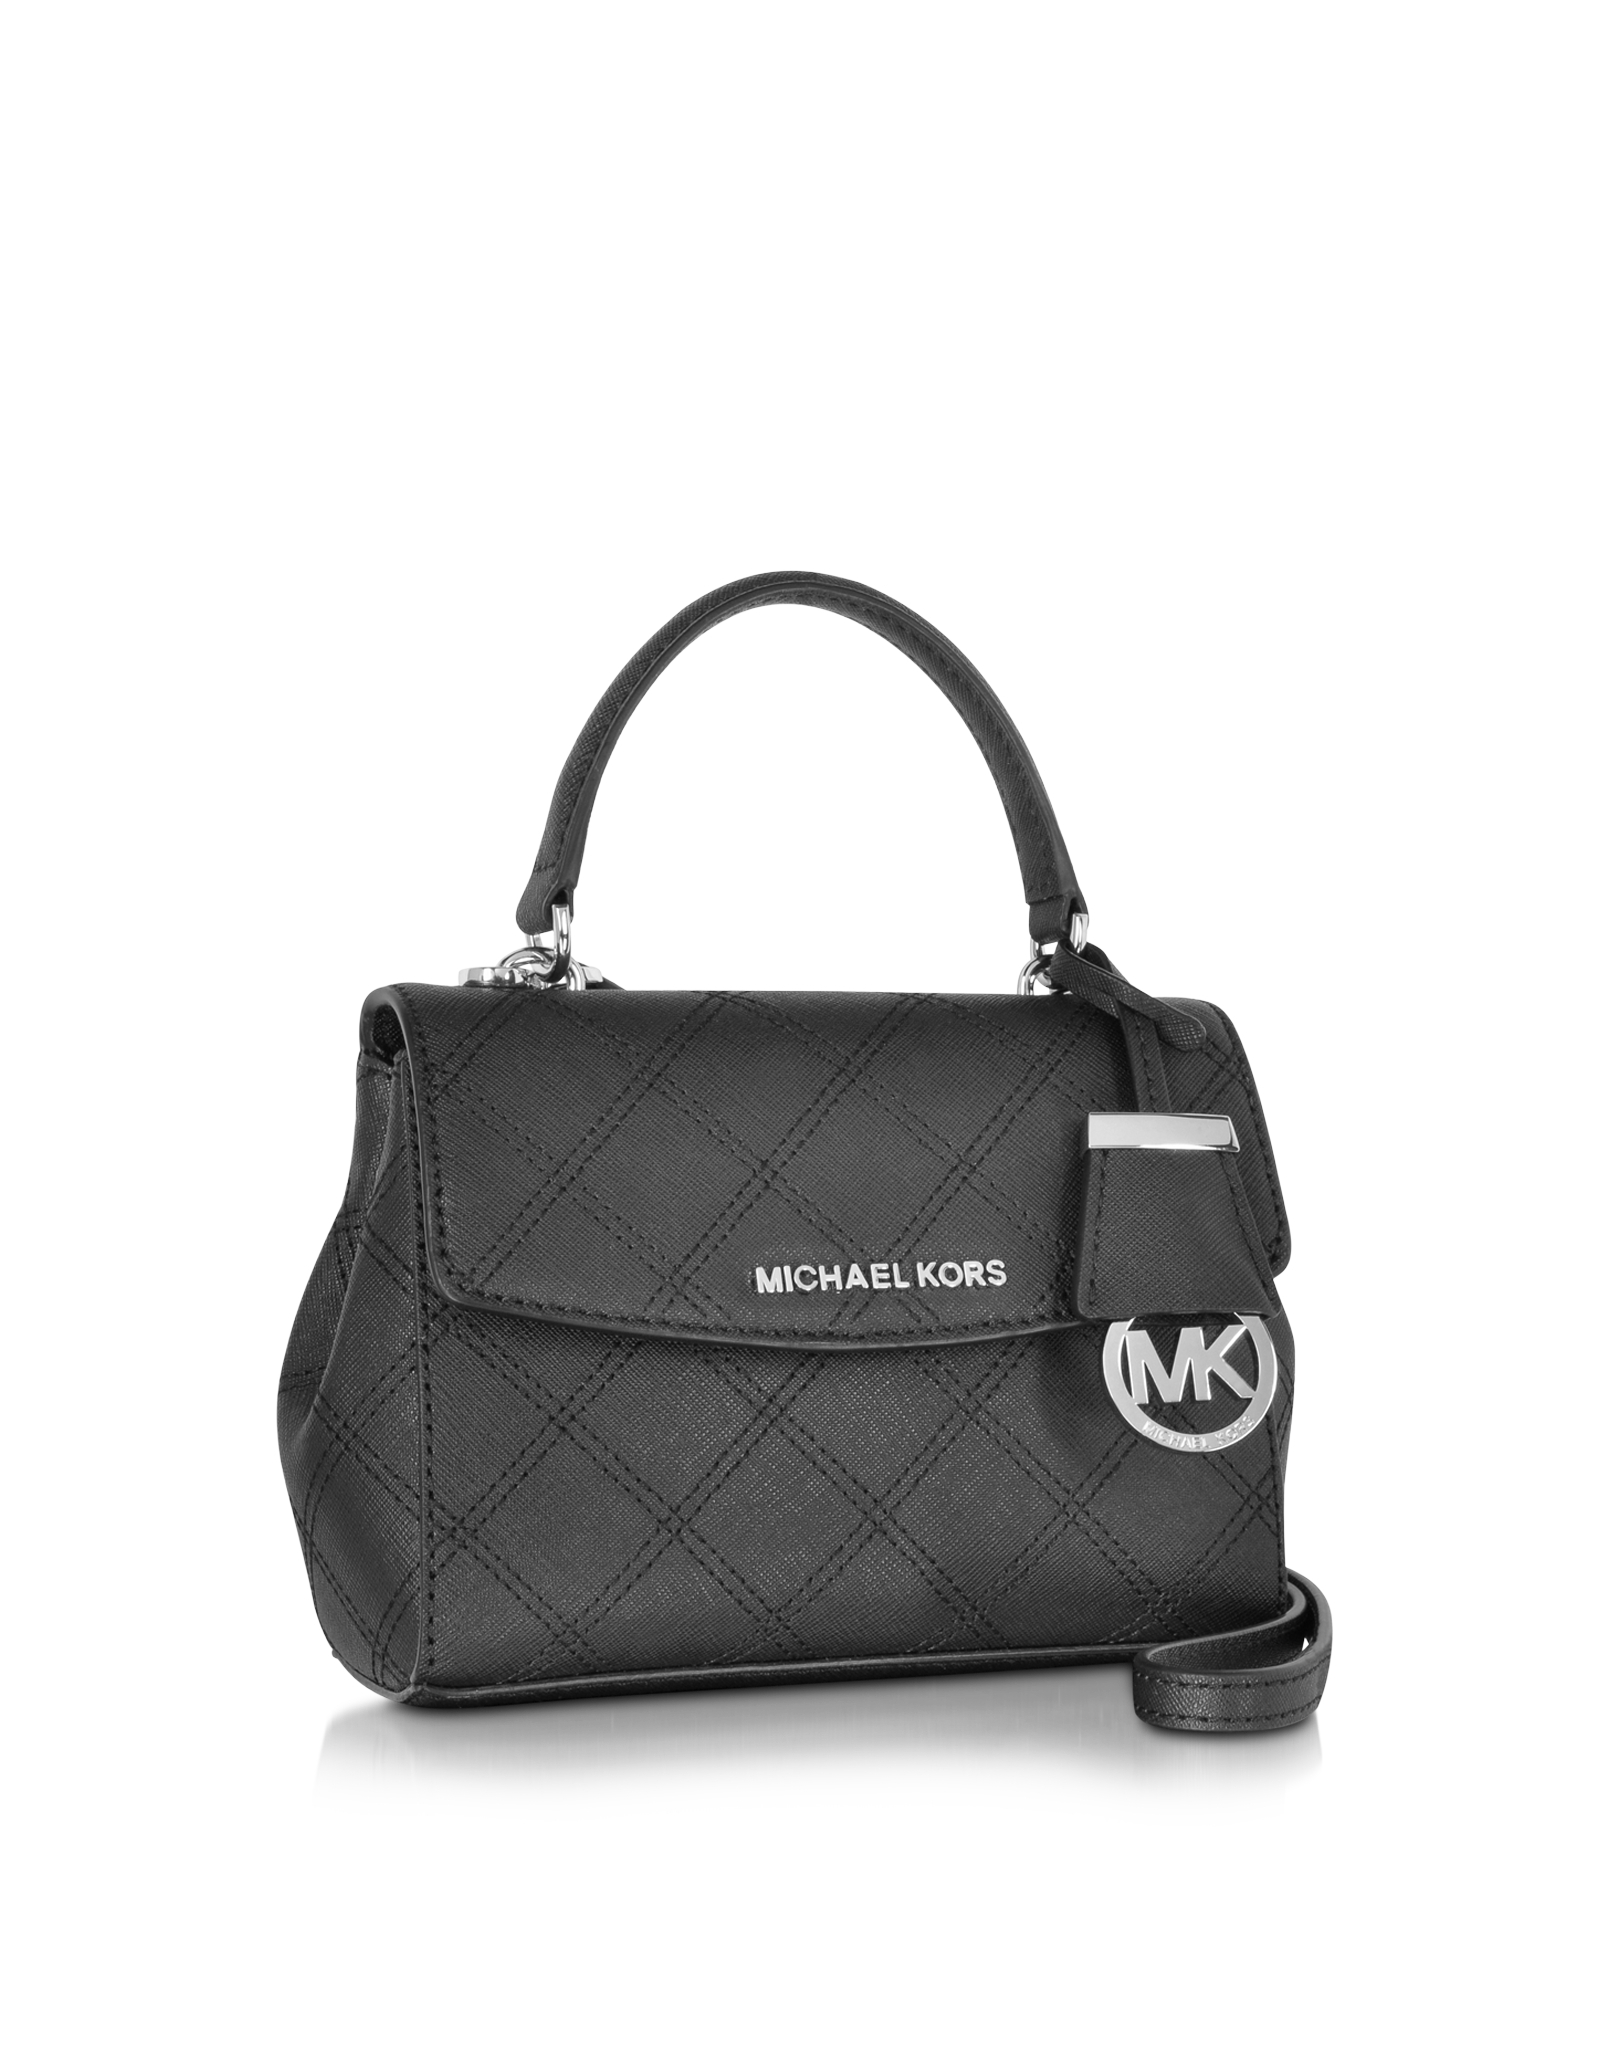 50bf0d09ab1ce Lyst - Michael Kors Ava Saffiano Stitch Quilt Leather Extra Small ...